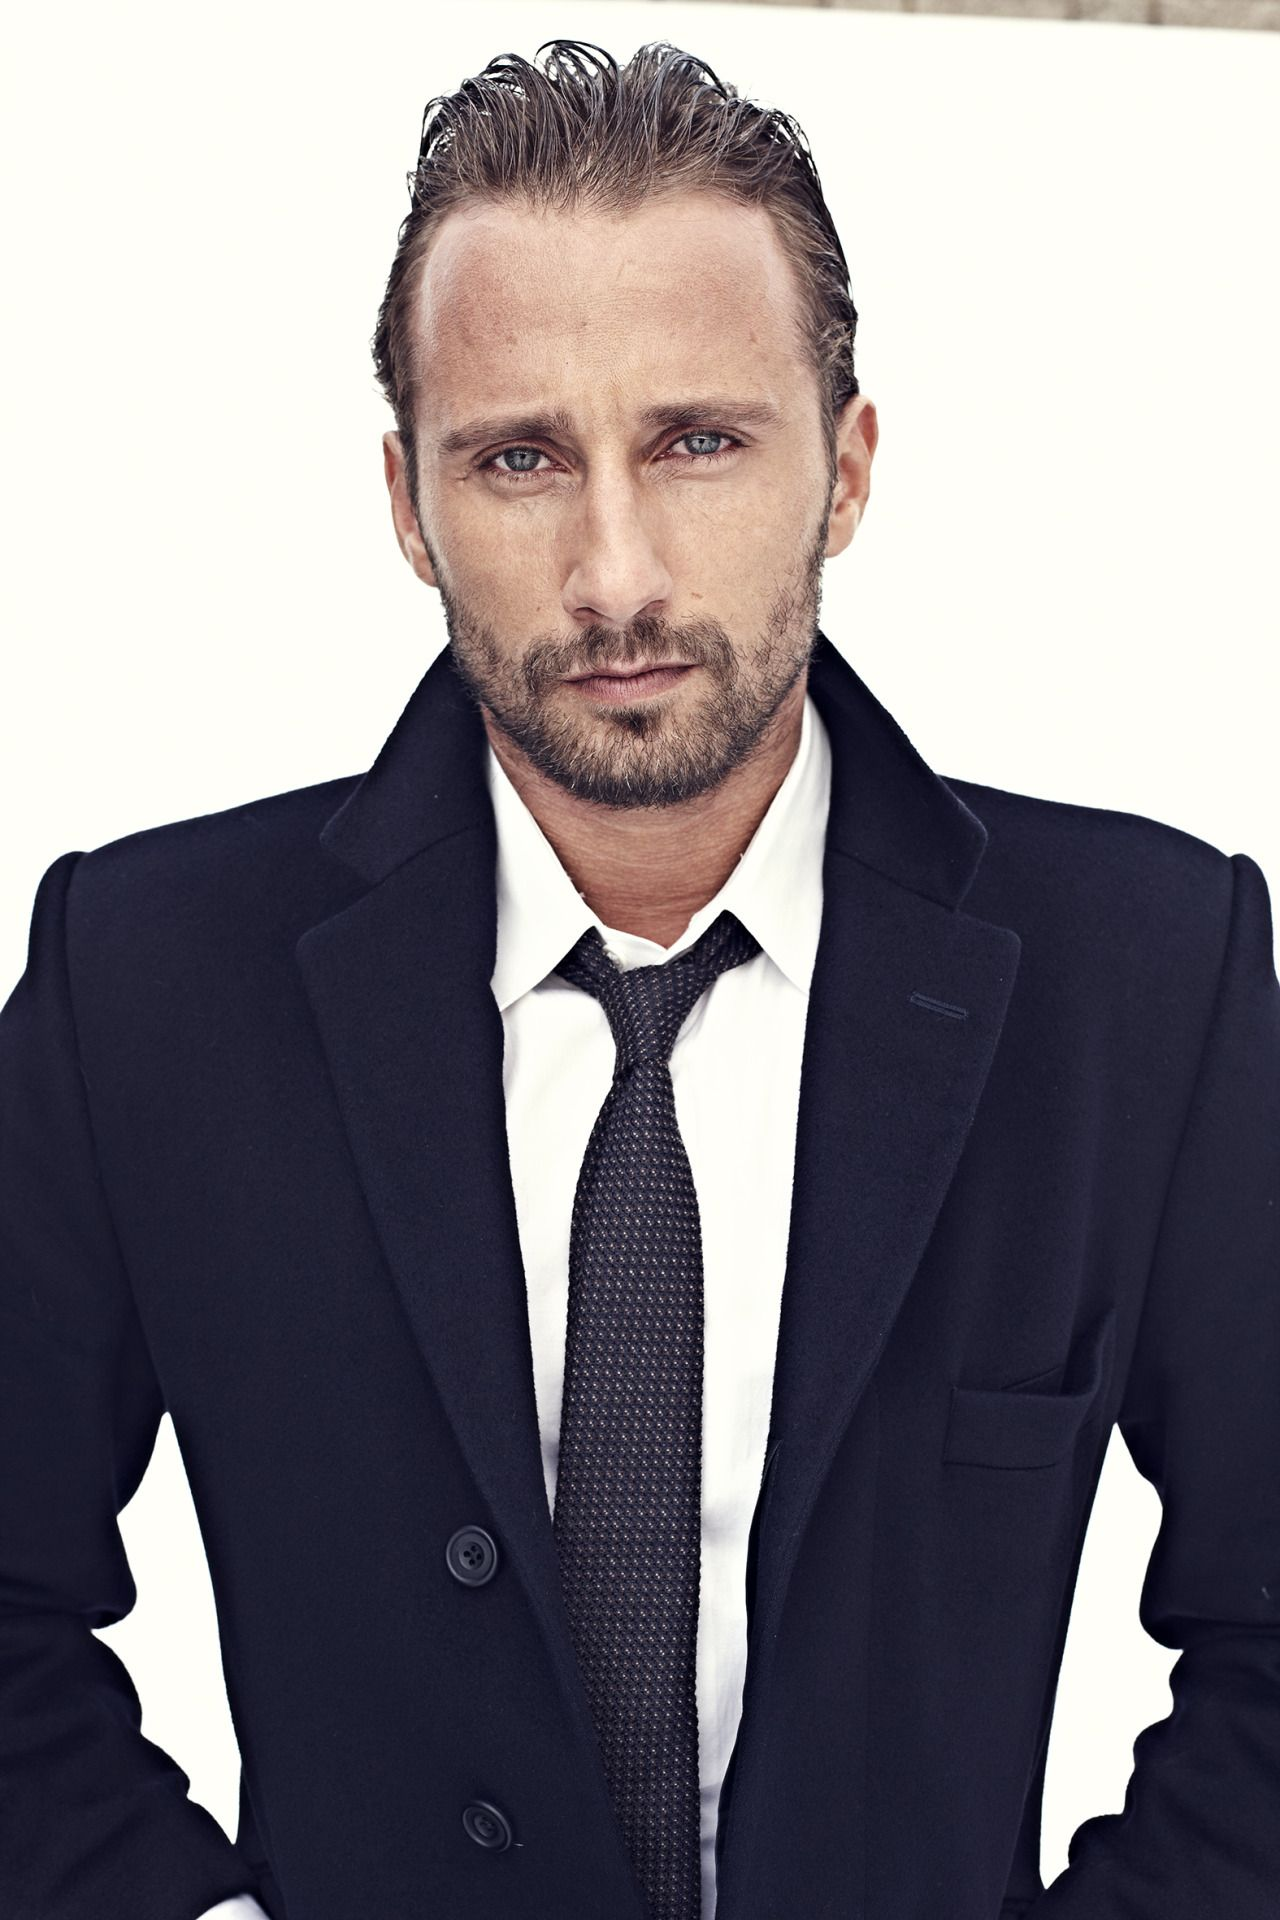 matthias schoenaerts gifmatthias schoenaerts putin, matthias schoenaerts wife, matthias schoenaerts 2017, matthias schoenaerts vk, matthias schoenaerts gif, matthias schoenaerts 2016, matthias schoenaerts personal life, matthias schoenaerts a bigger splash, matthias schoenaerts forum, matthias schoenaerts maryland, matthias schoenaerts kursk, matthias schoenaerts movies, matthias schoenaerts film, matthias schoenaerts single, matthias schoenaerts cannes, matthias schoenaerts news, matthias schoenaerts casa, matthias schoenaerts vikipedi, matthias schoenaerts zenith, matthias schoenaerts eye color